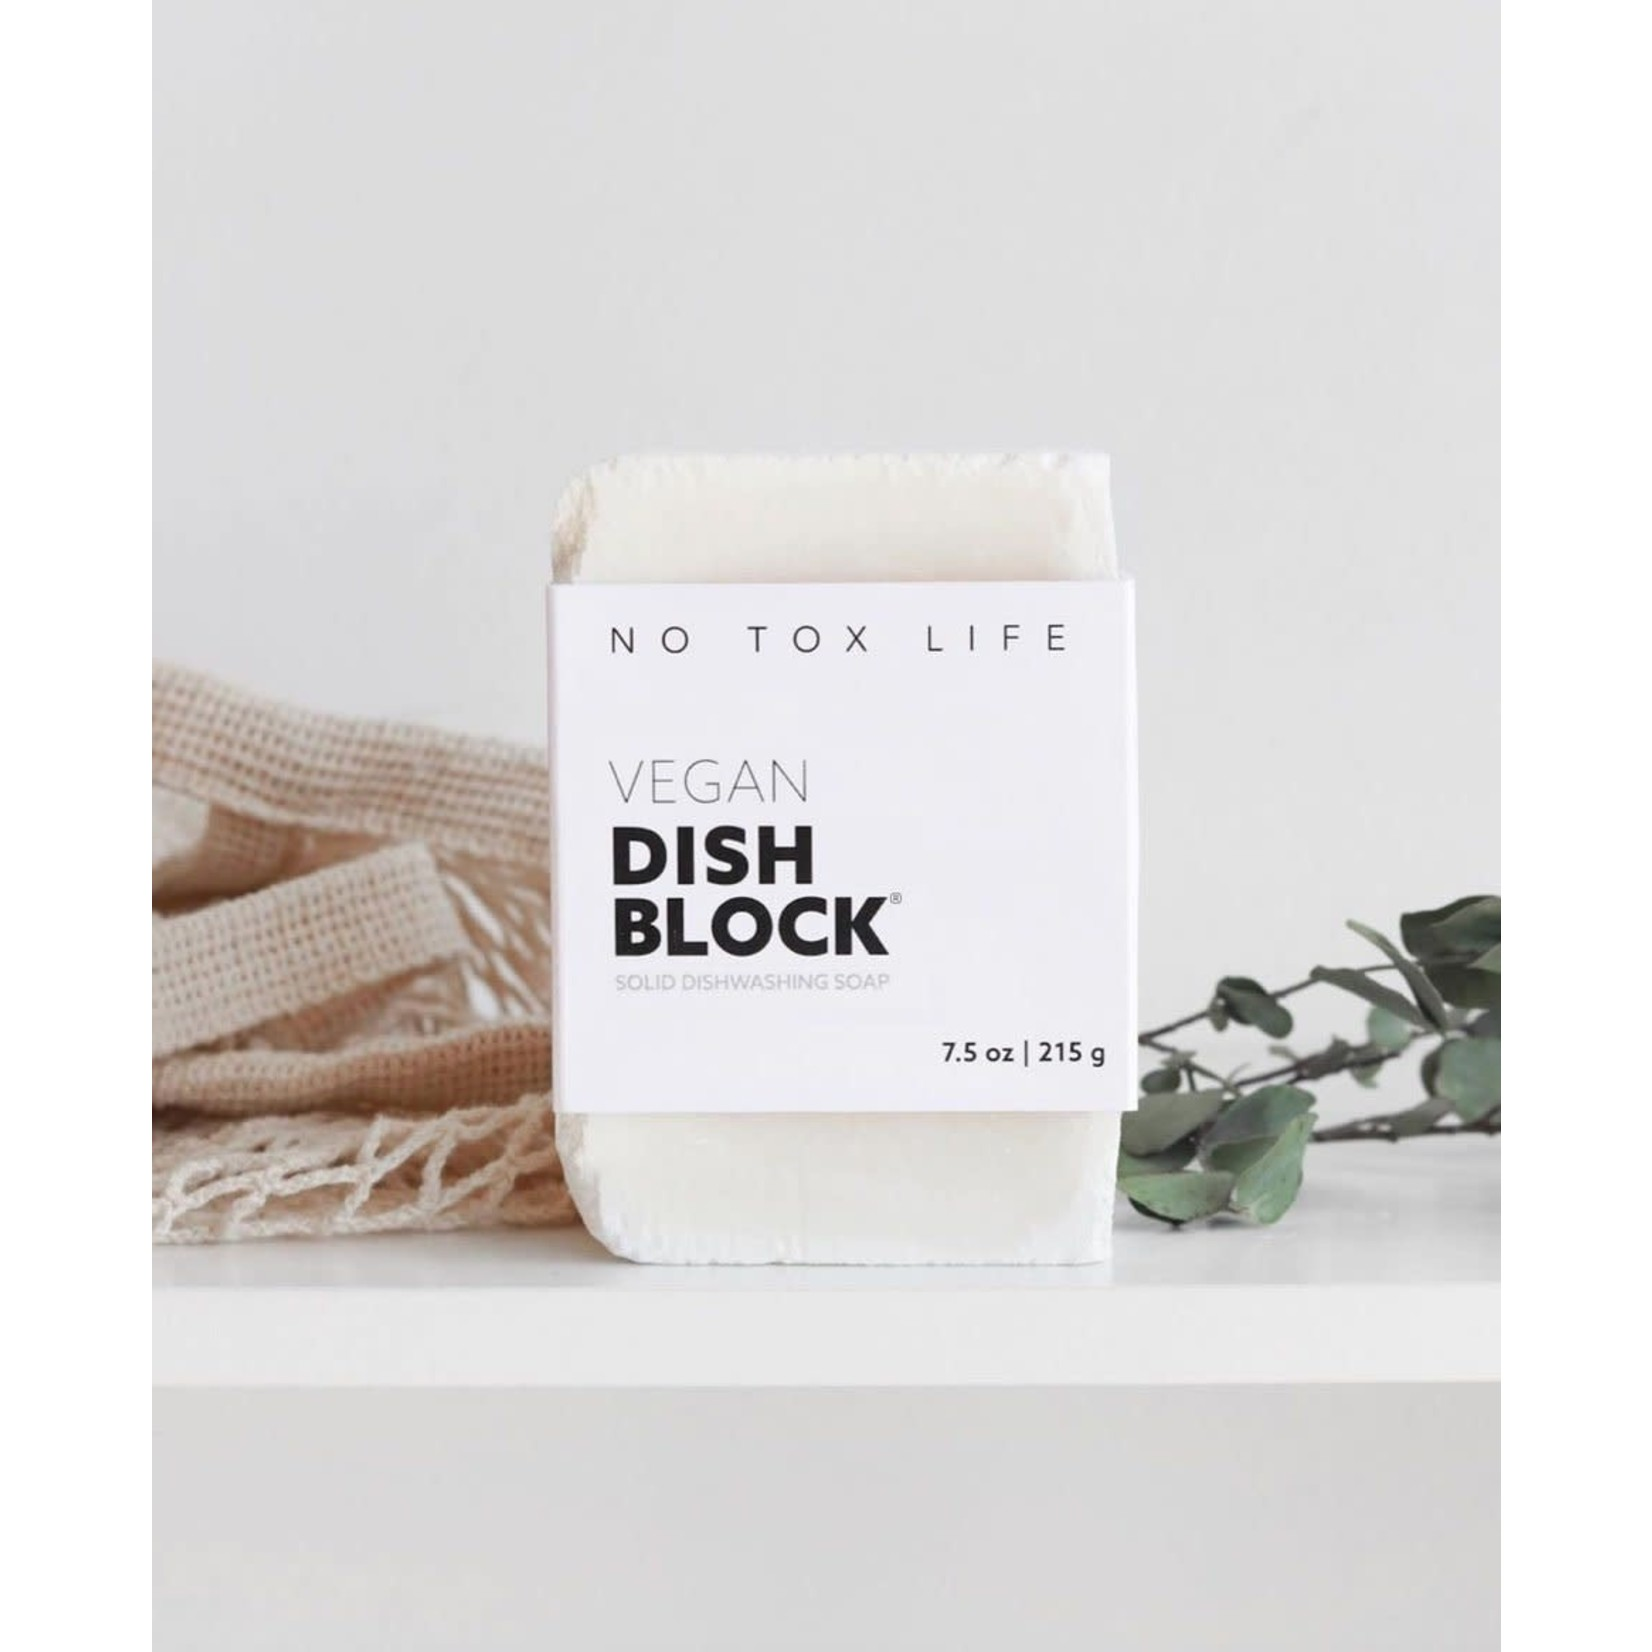 NO TOX LIFE VEGAN ZERO WASTE DISH WASHING BLOCK